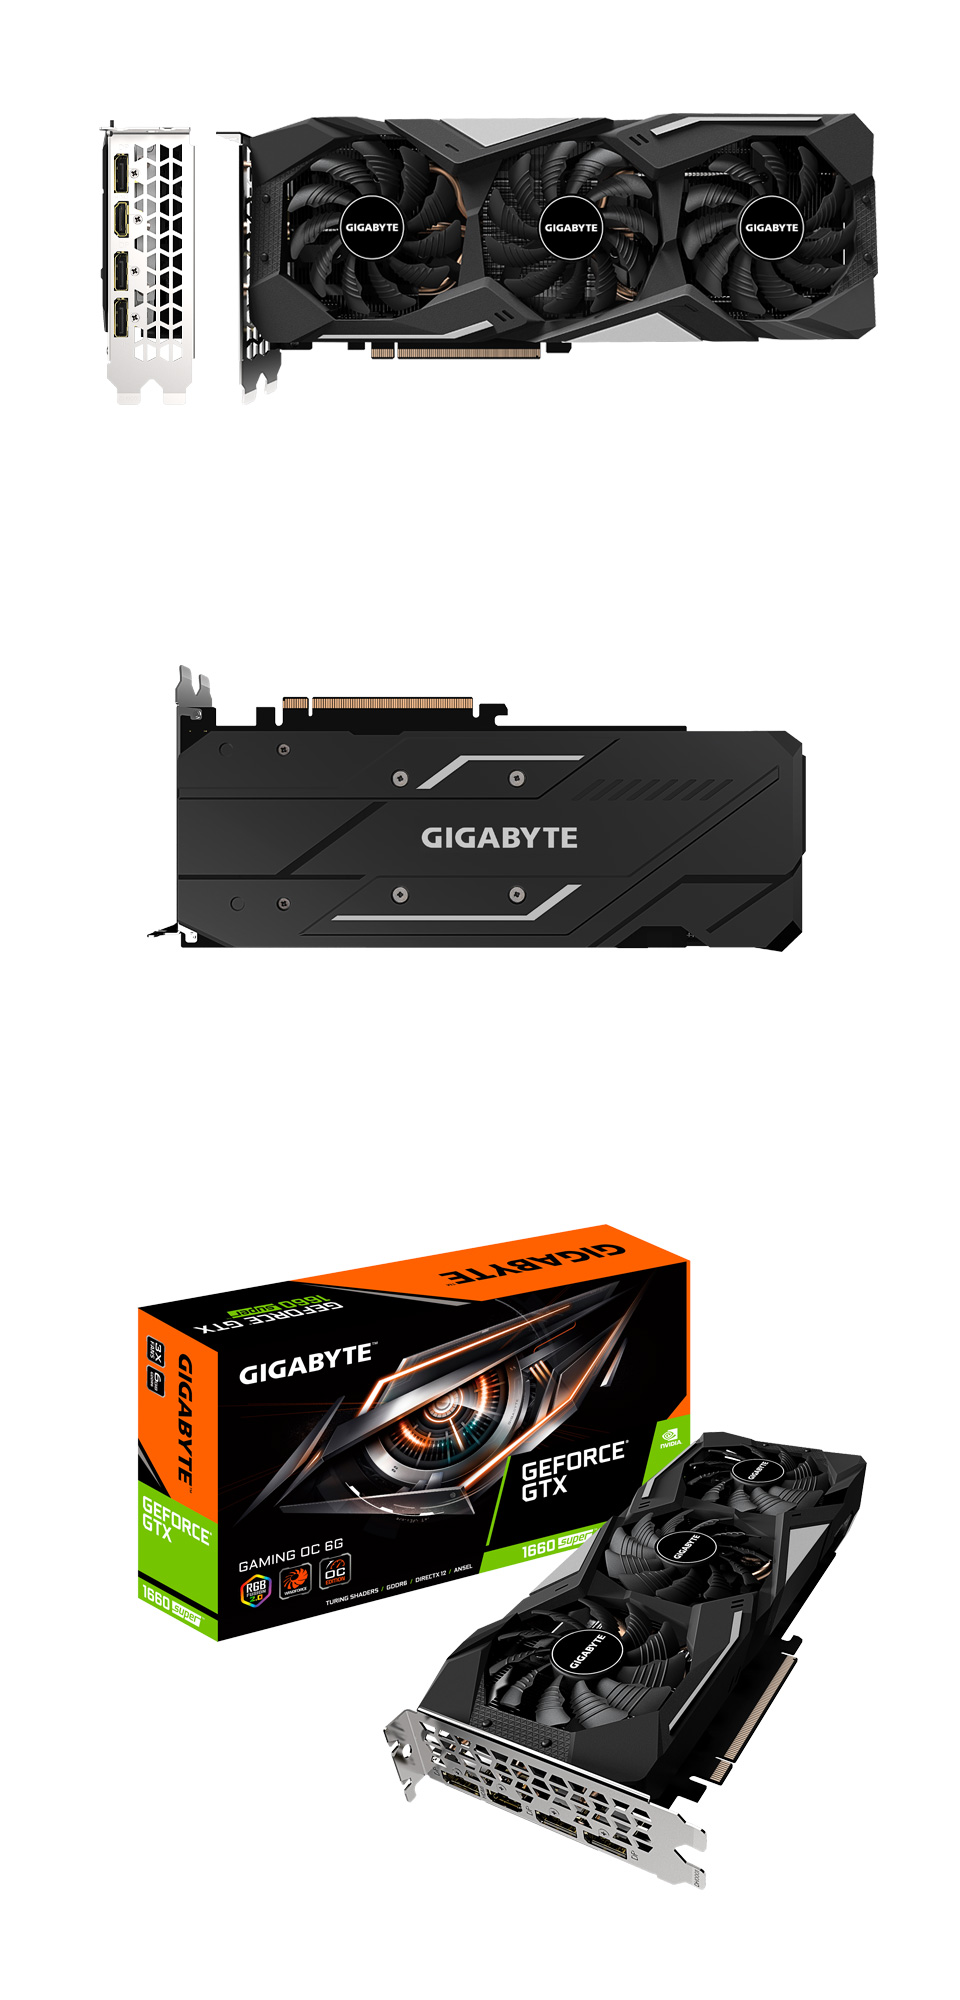 Gigabyte GeForce GTX 1660 Super Gaming OC 6GB product